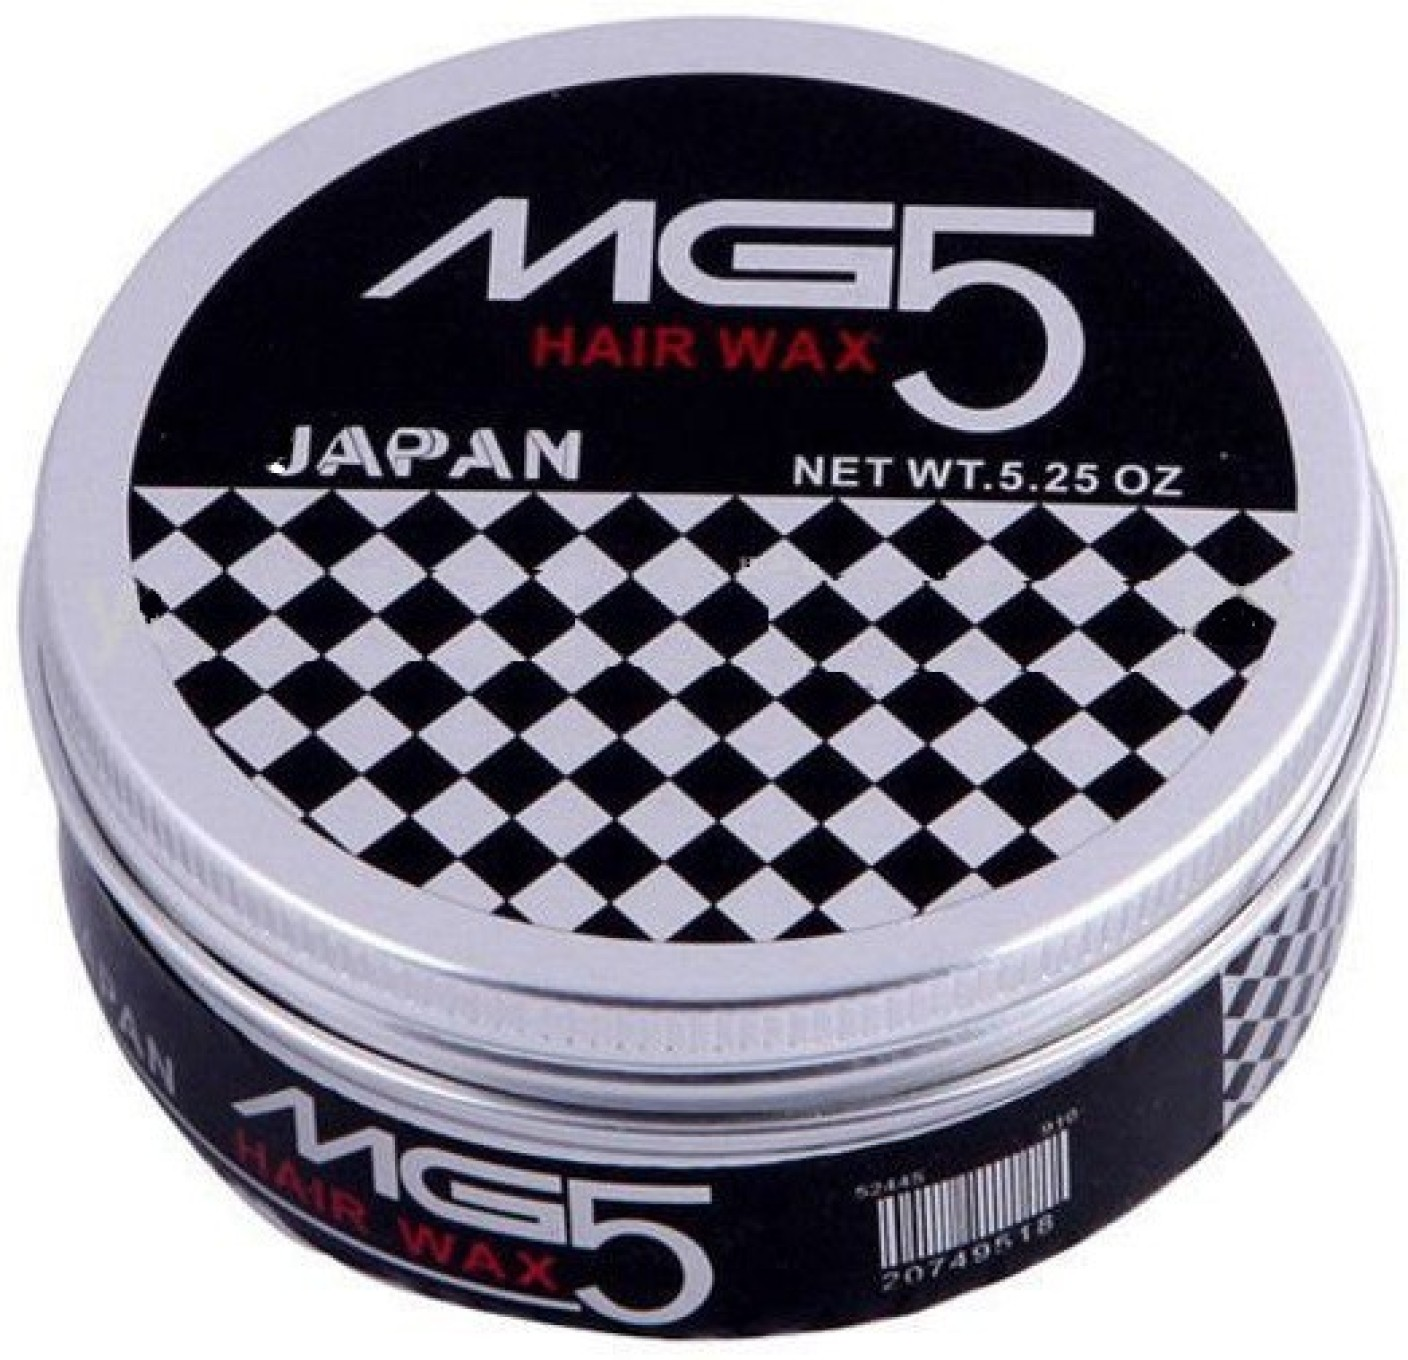 Price In India, Buy MG5 Japan Hair